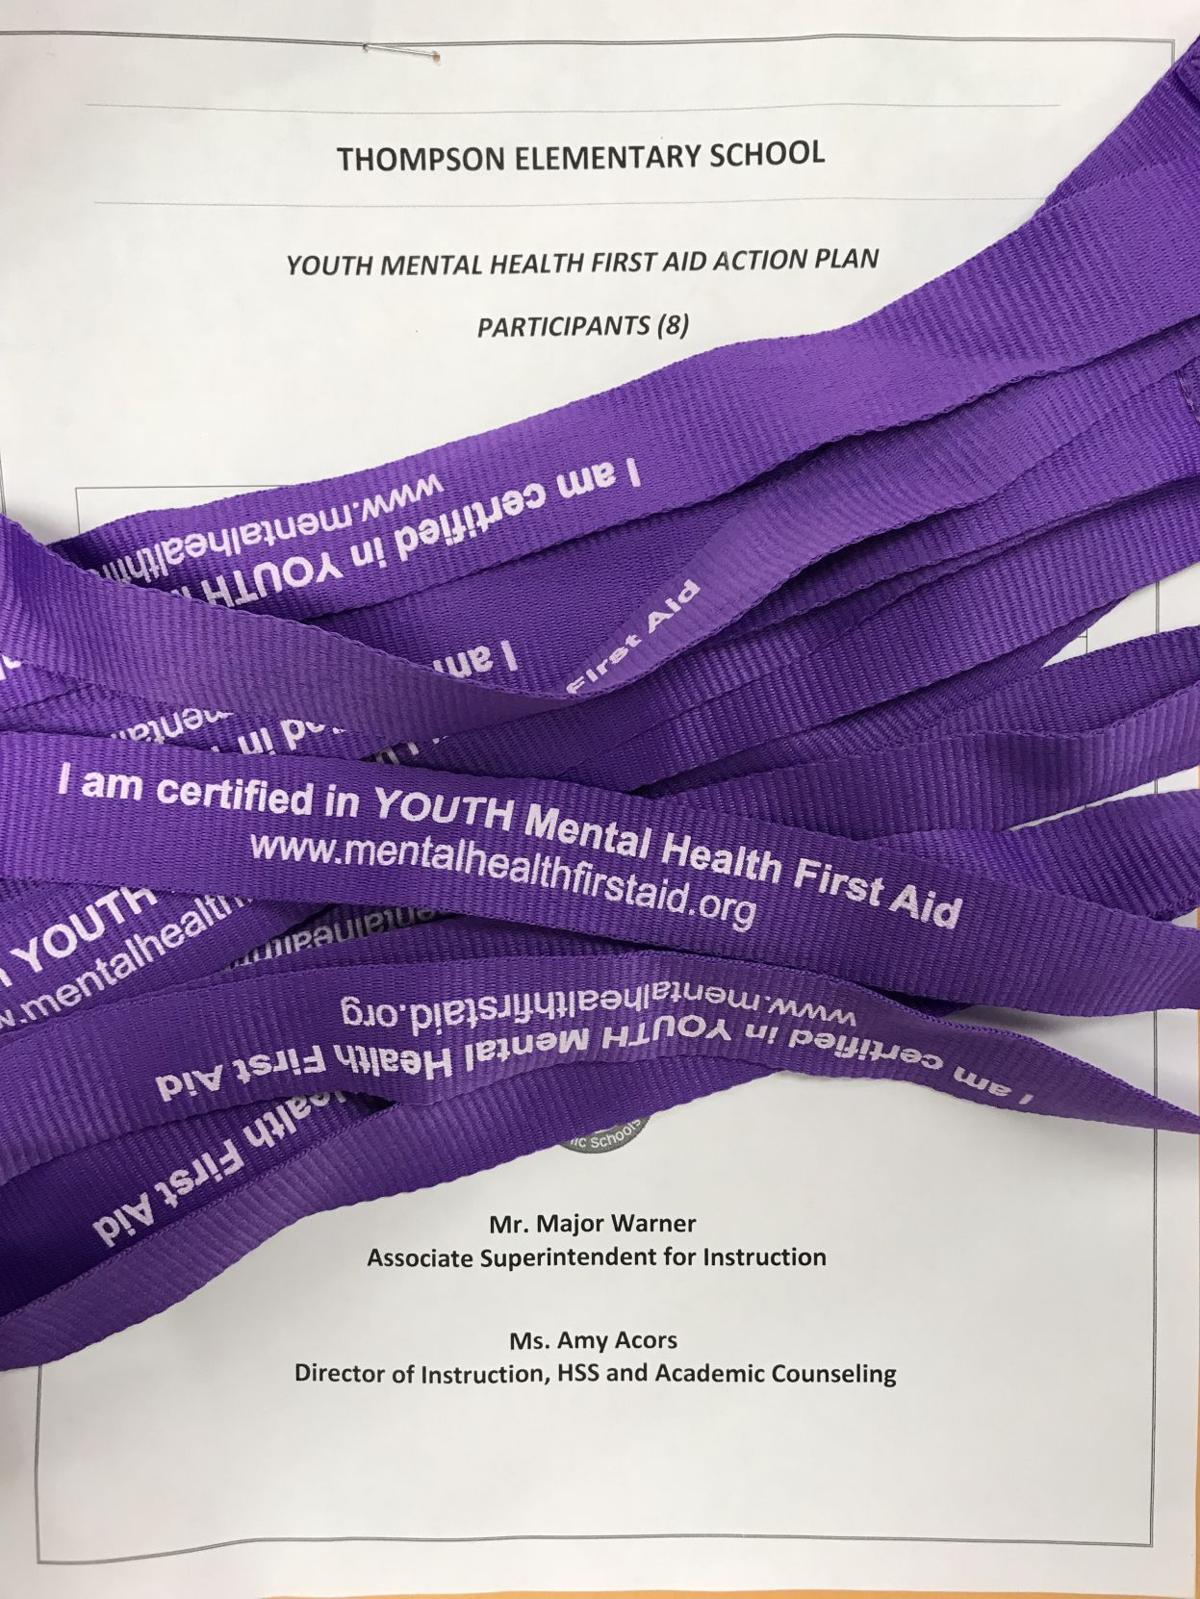 Purple Lanyards Identify Fauquier School Staff Trained In Mental